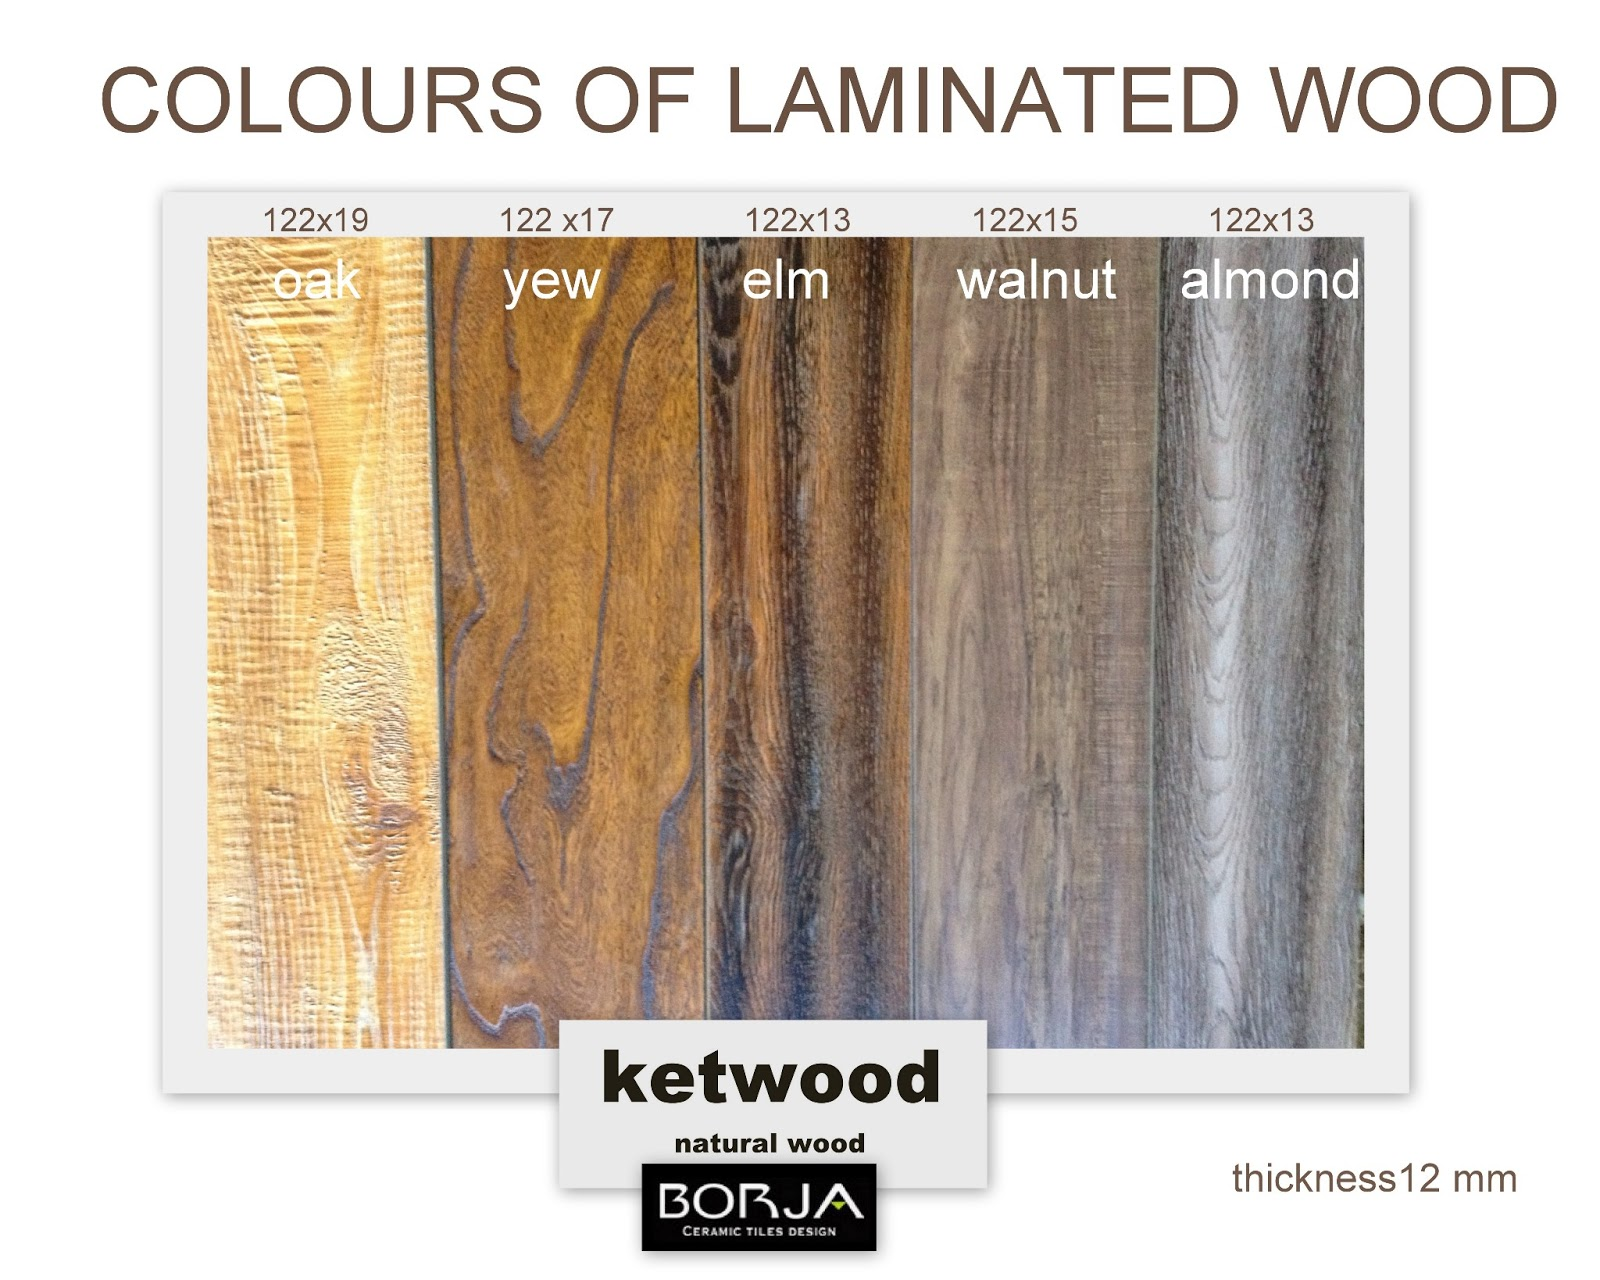 Top Laminate Flooring Floating Wood Tile Or Natural Wood Pros And With Laminate Pros And Cons